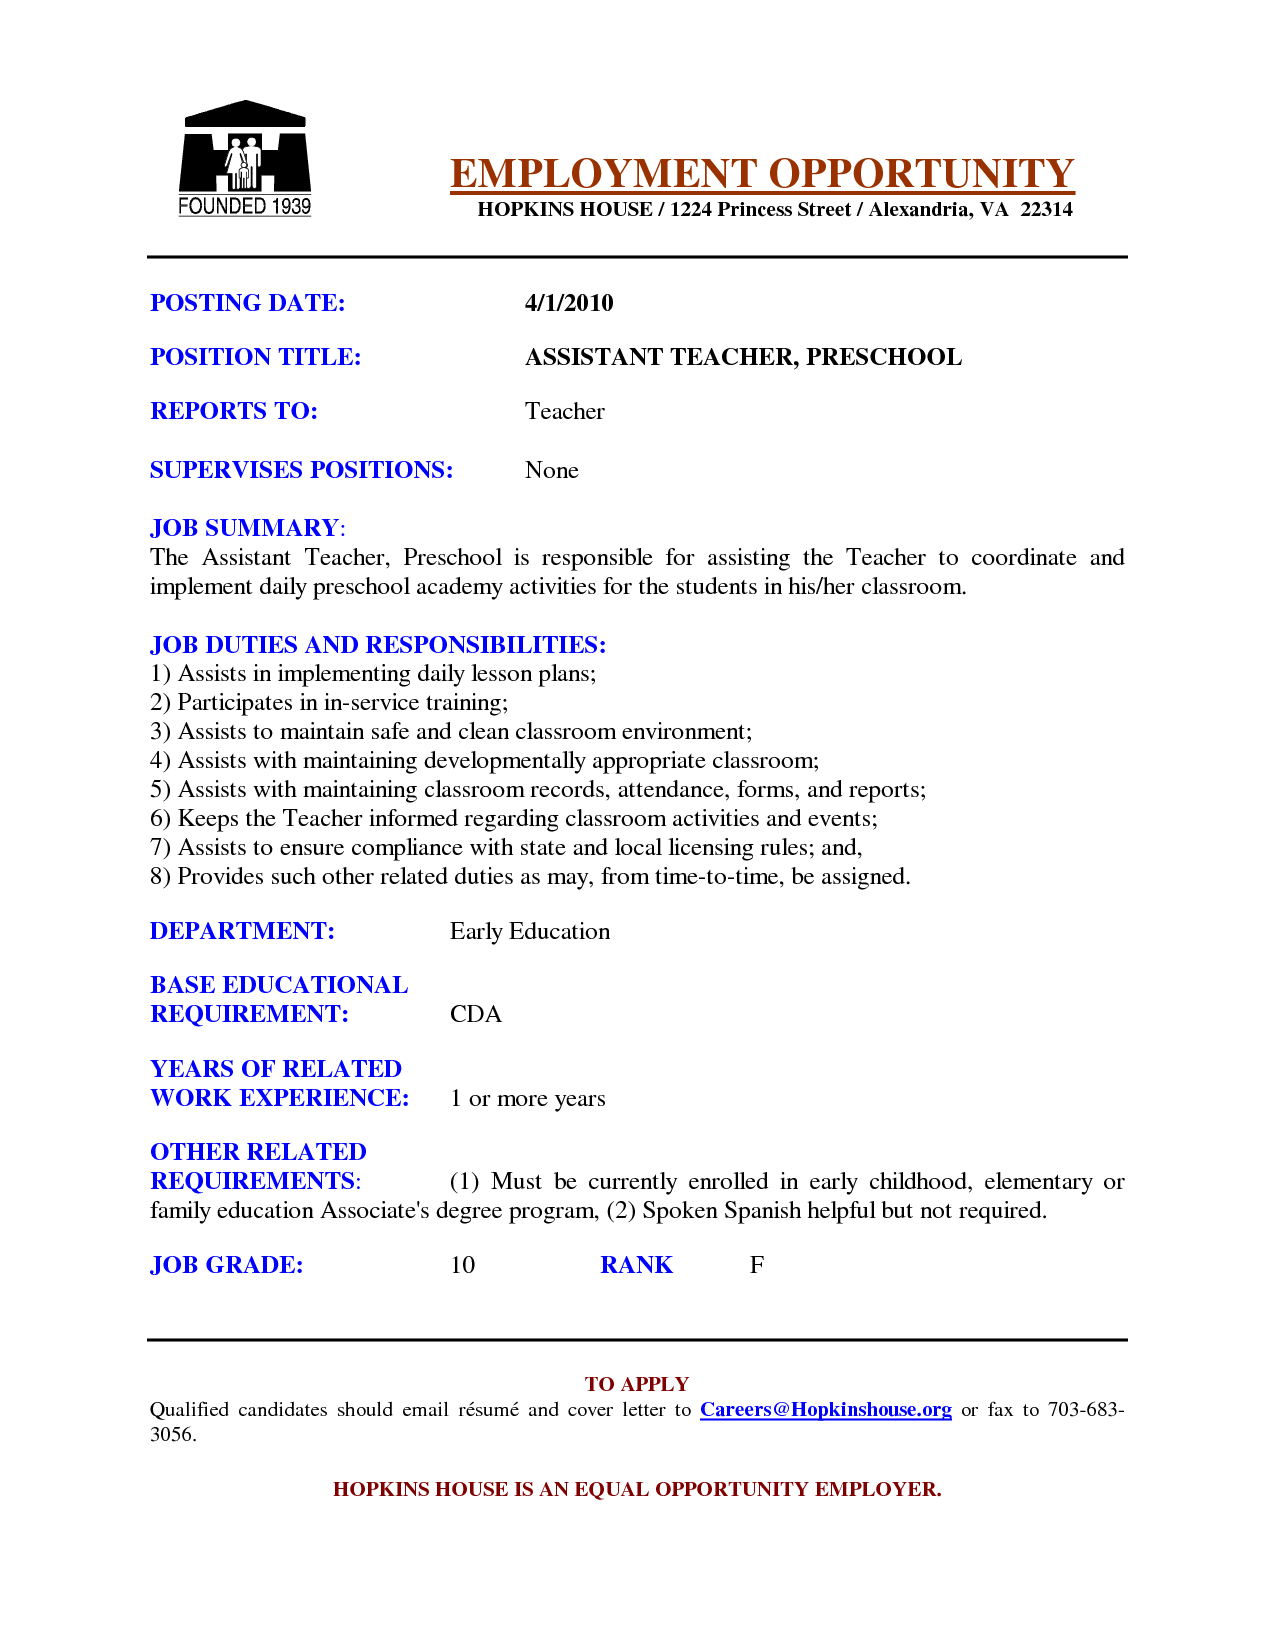 Elementary School Teacher Resume Template - Preschool assistant Teacher Resume Examples Google Search